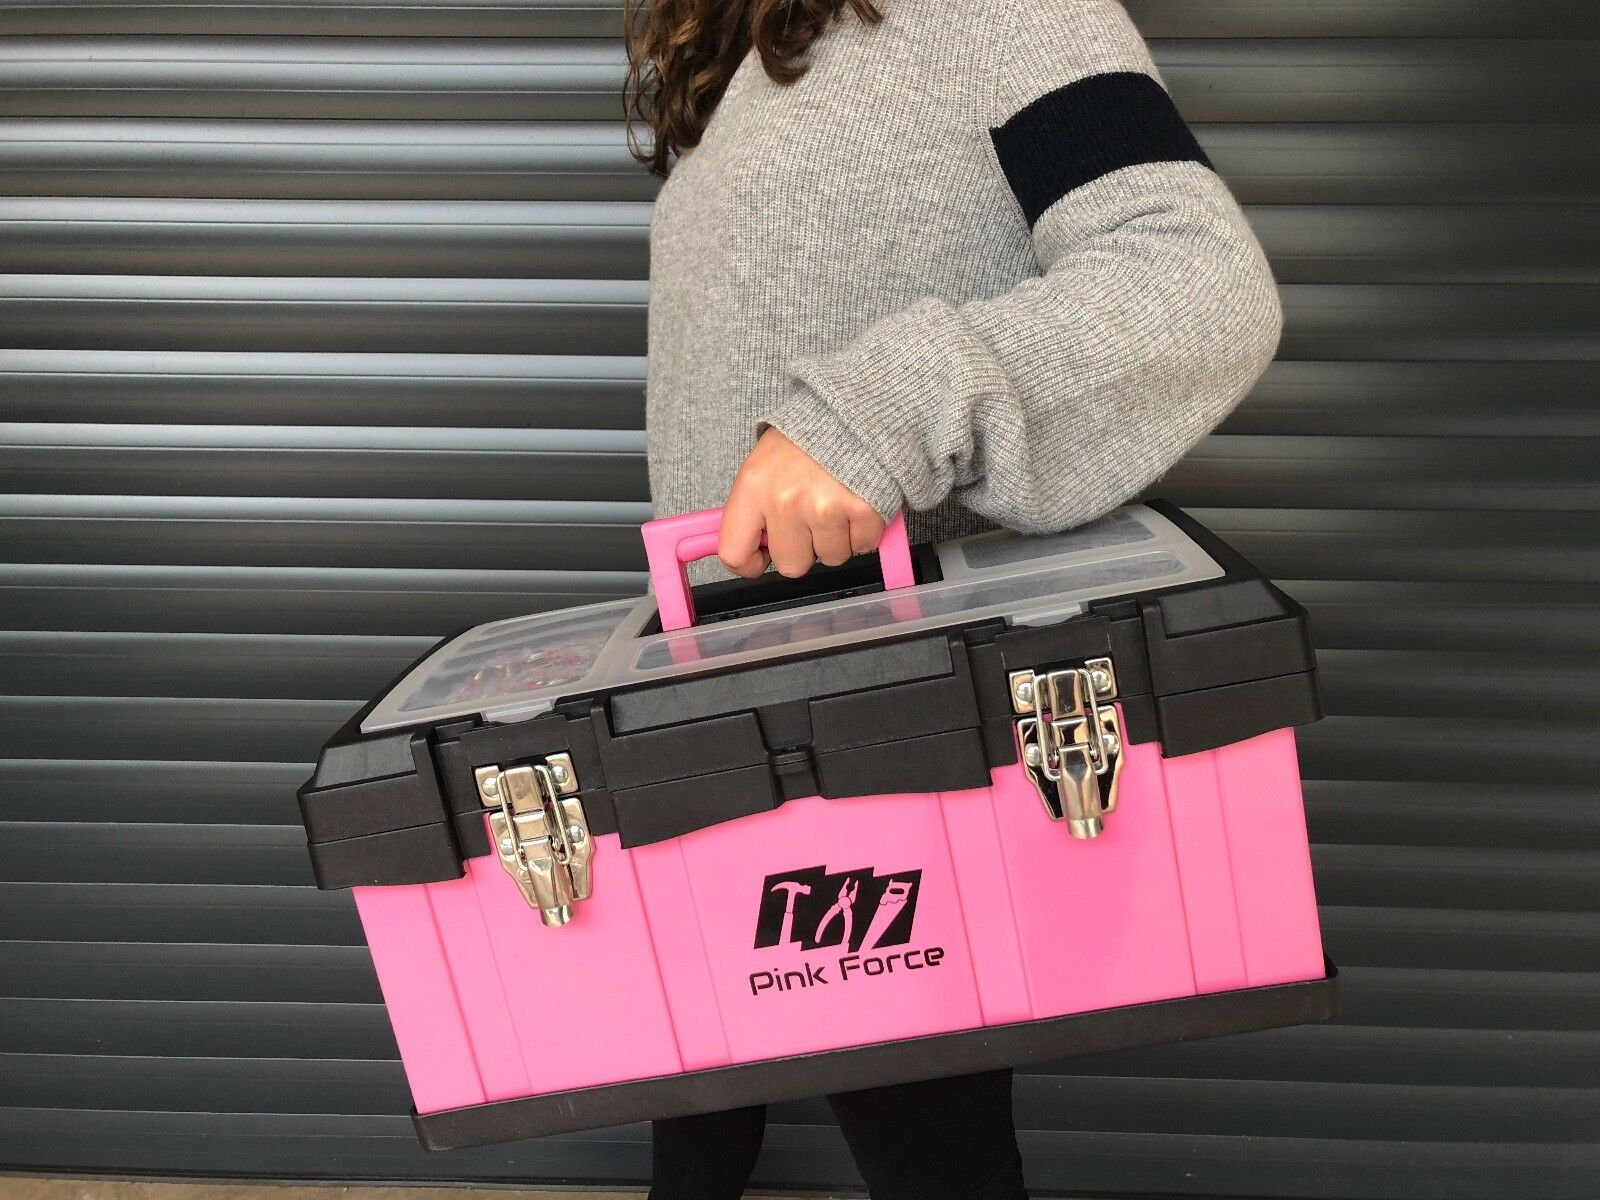 Pink Toolbox, Metal Heavy Duty, Brand New, Sale With Free Next Day Delivery